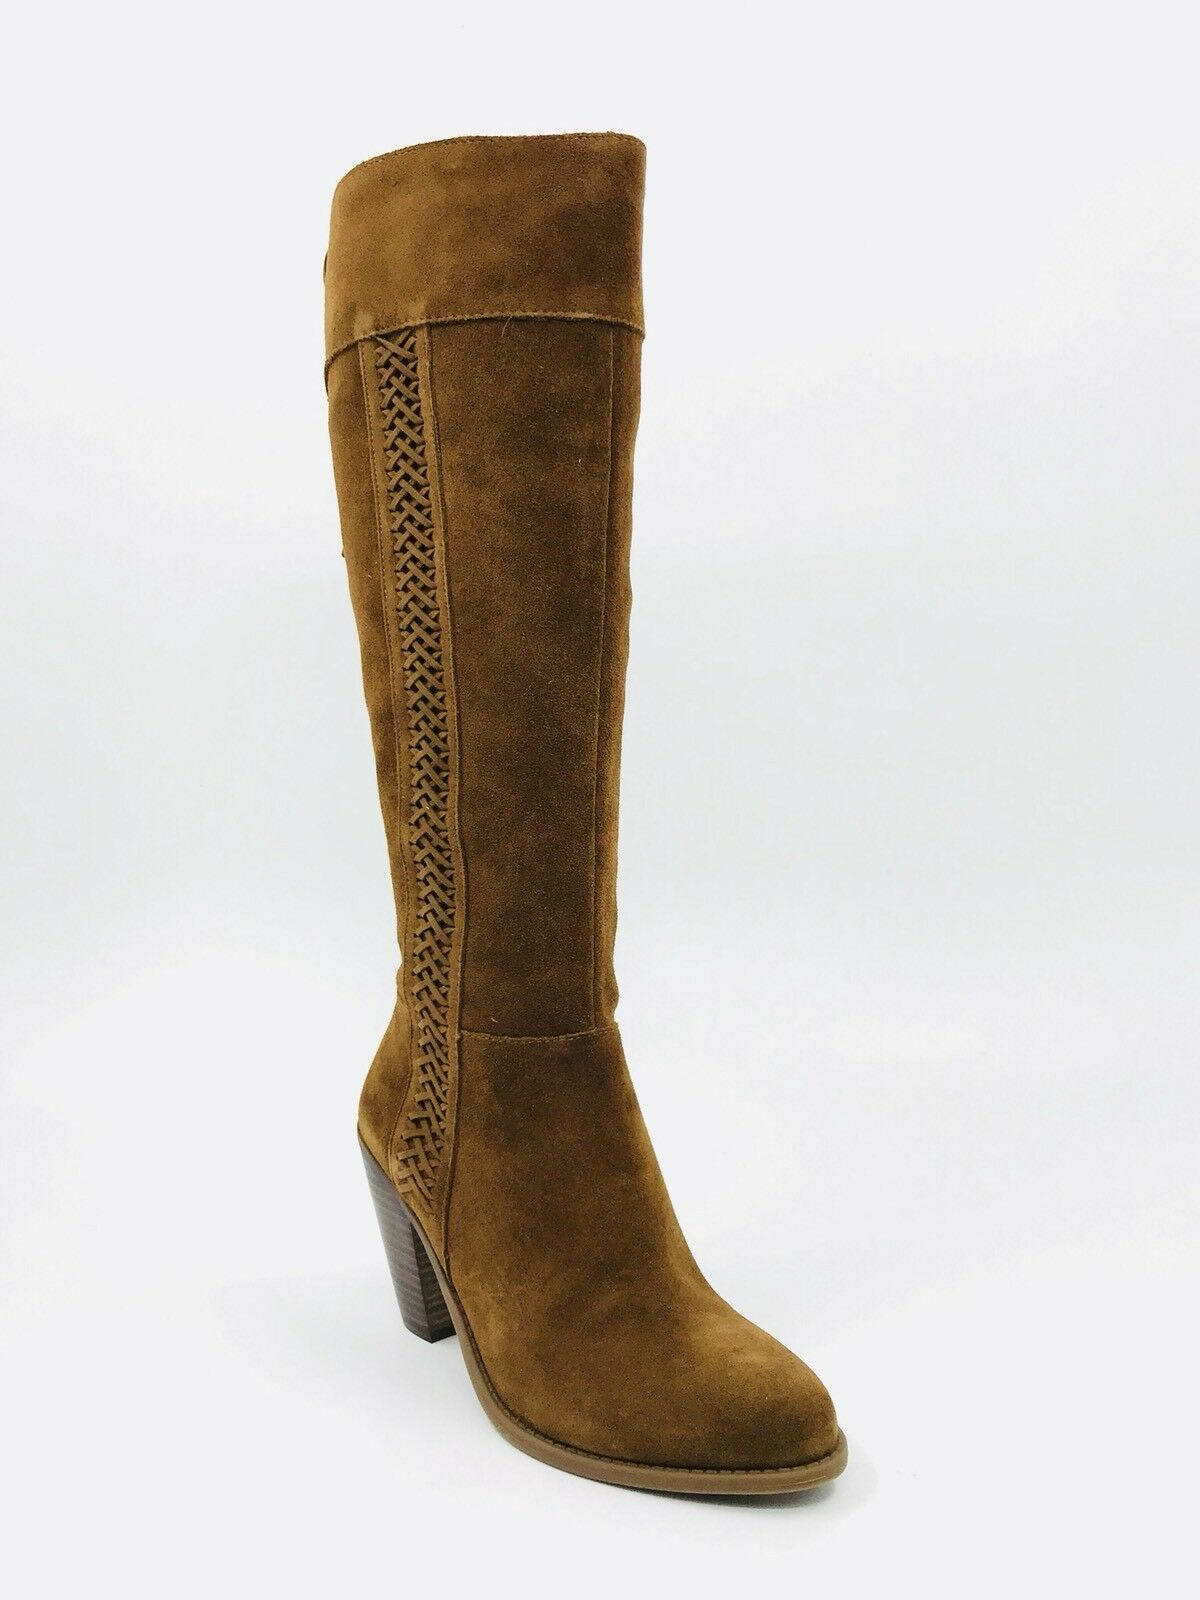 Jessica Simpson Ciarah Knee High High High Brown Suede Boots Size 9.5 33e5c8